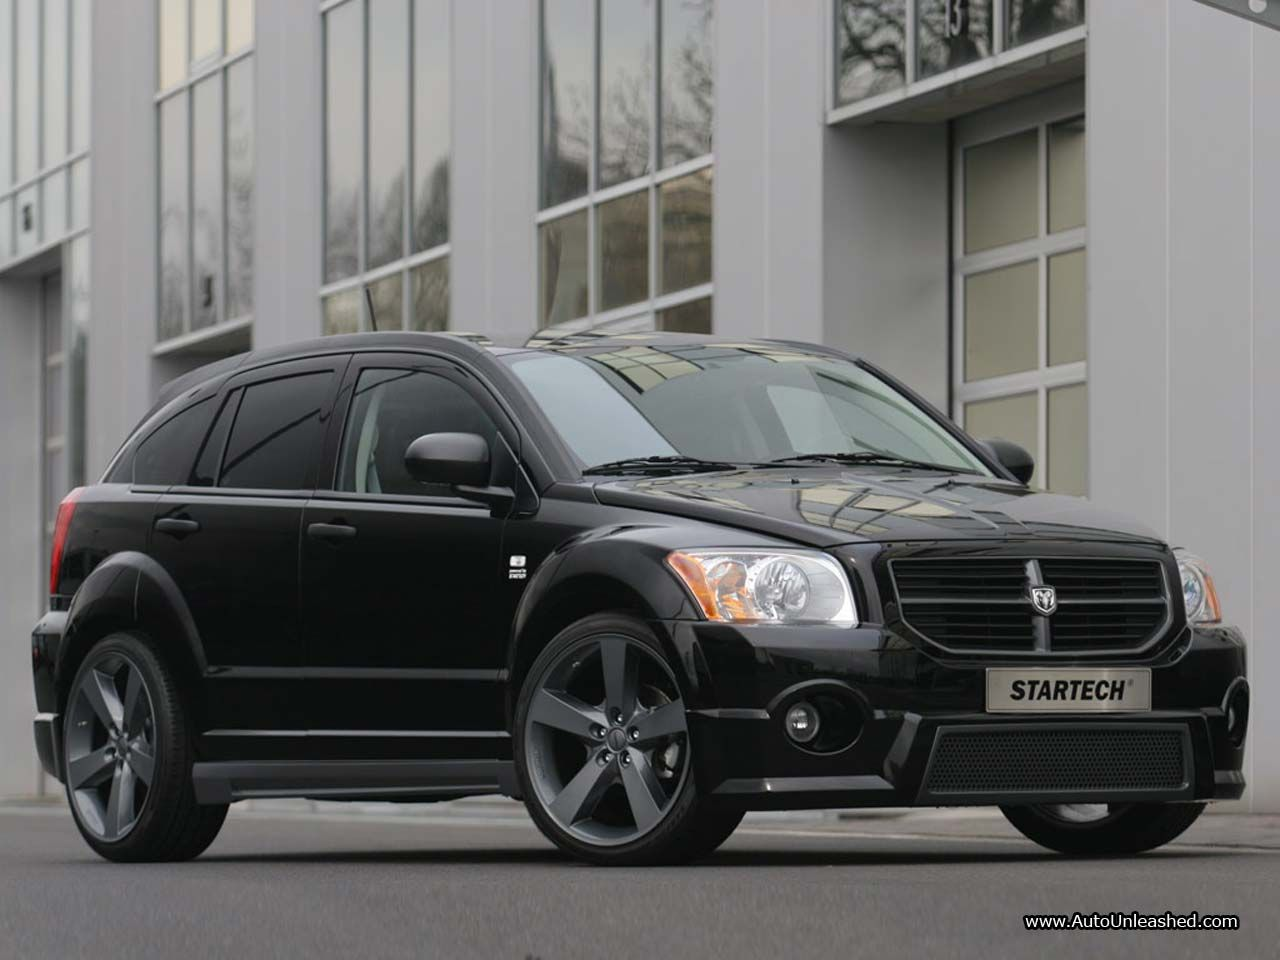 2010 Dodge Caliber Review Autos Post